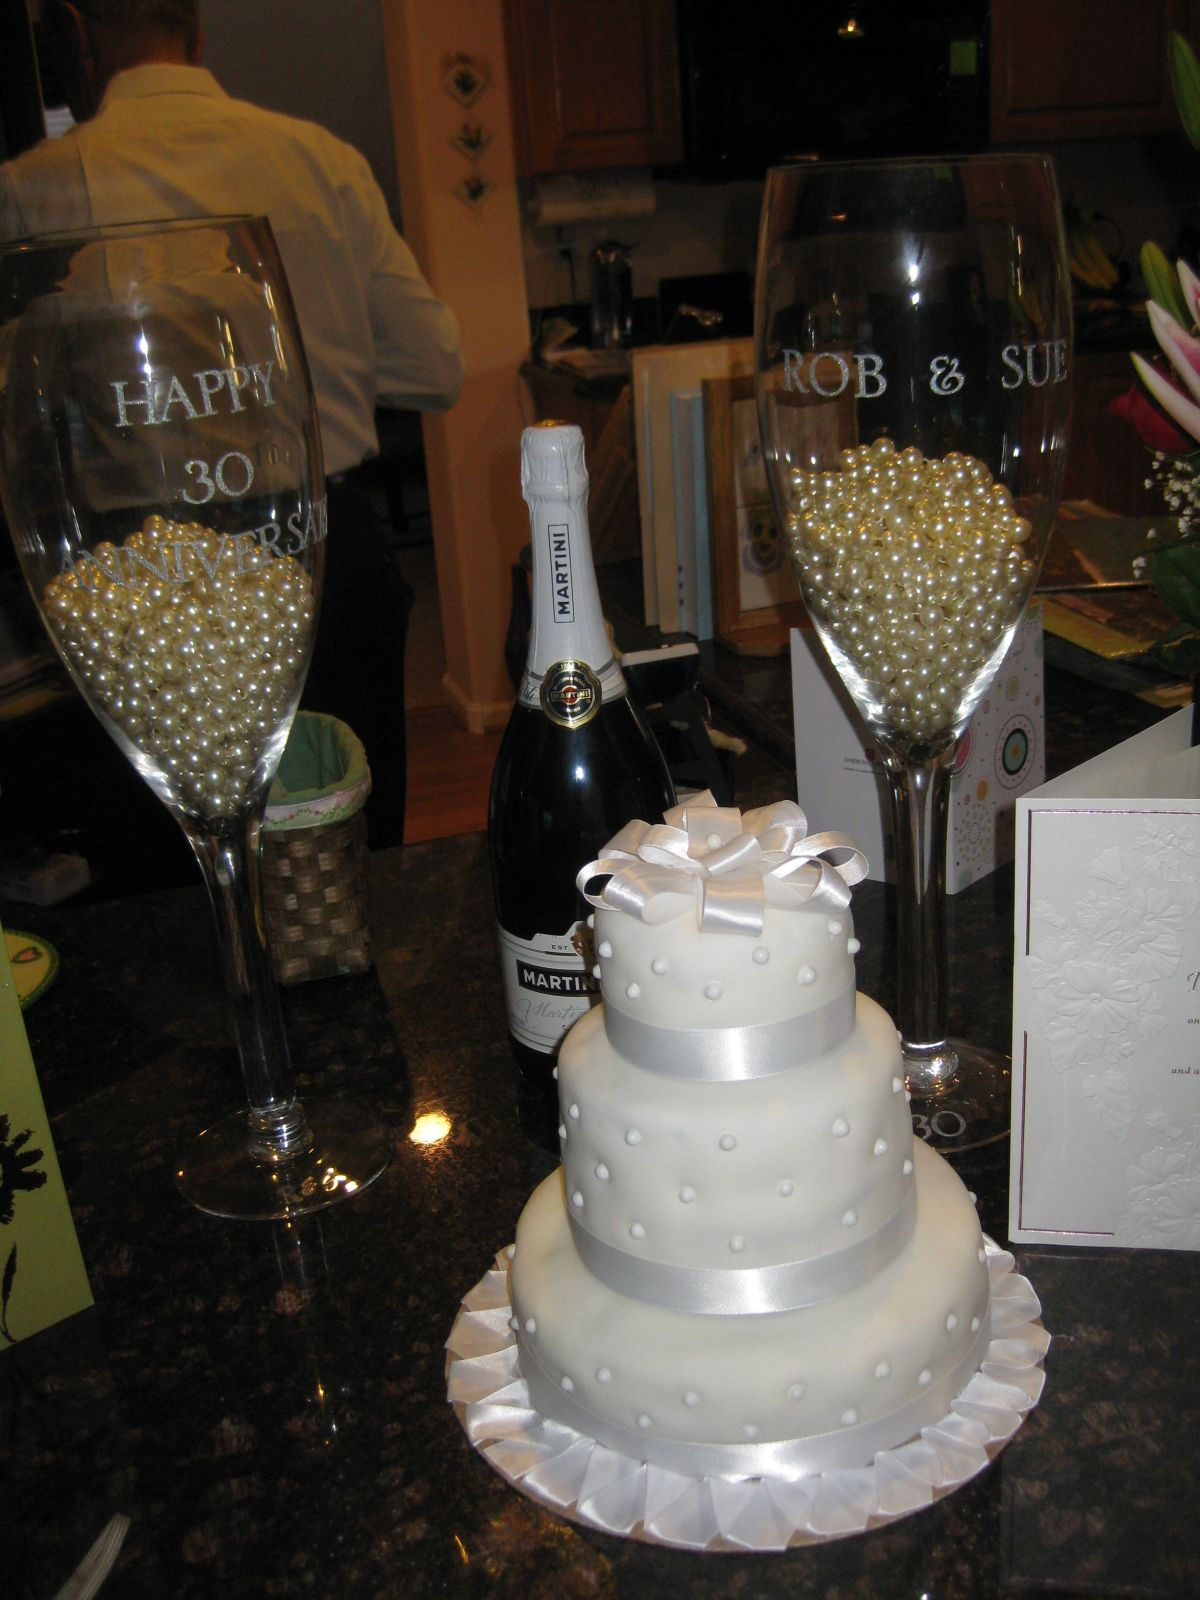 30th Anniversary Decorations 30th Anniversary Centerpiece Ideas Table Centerpiece Table Top